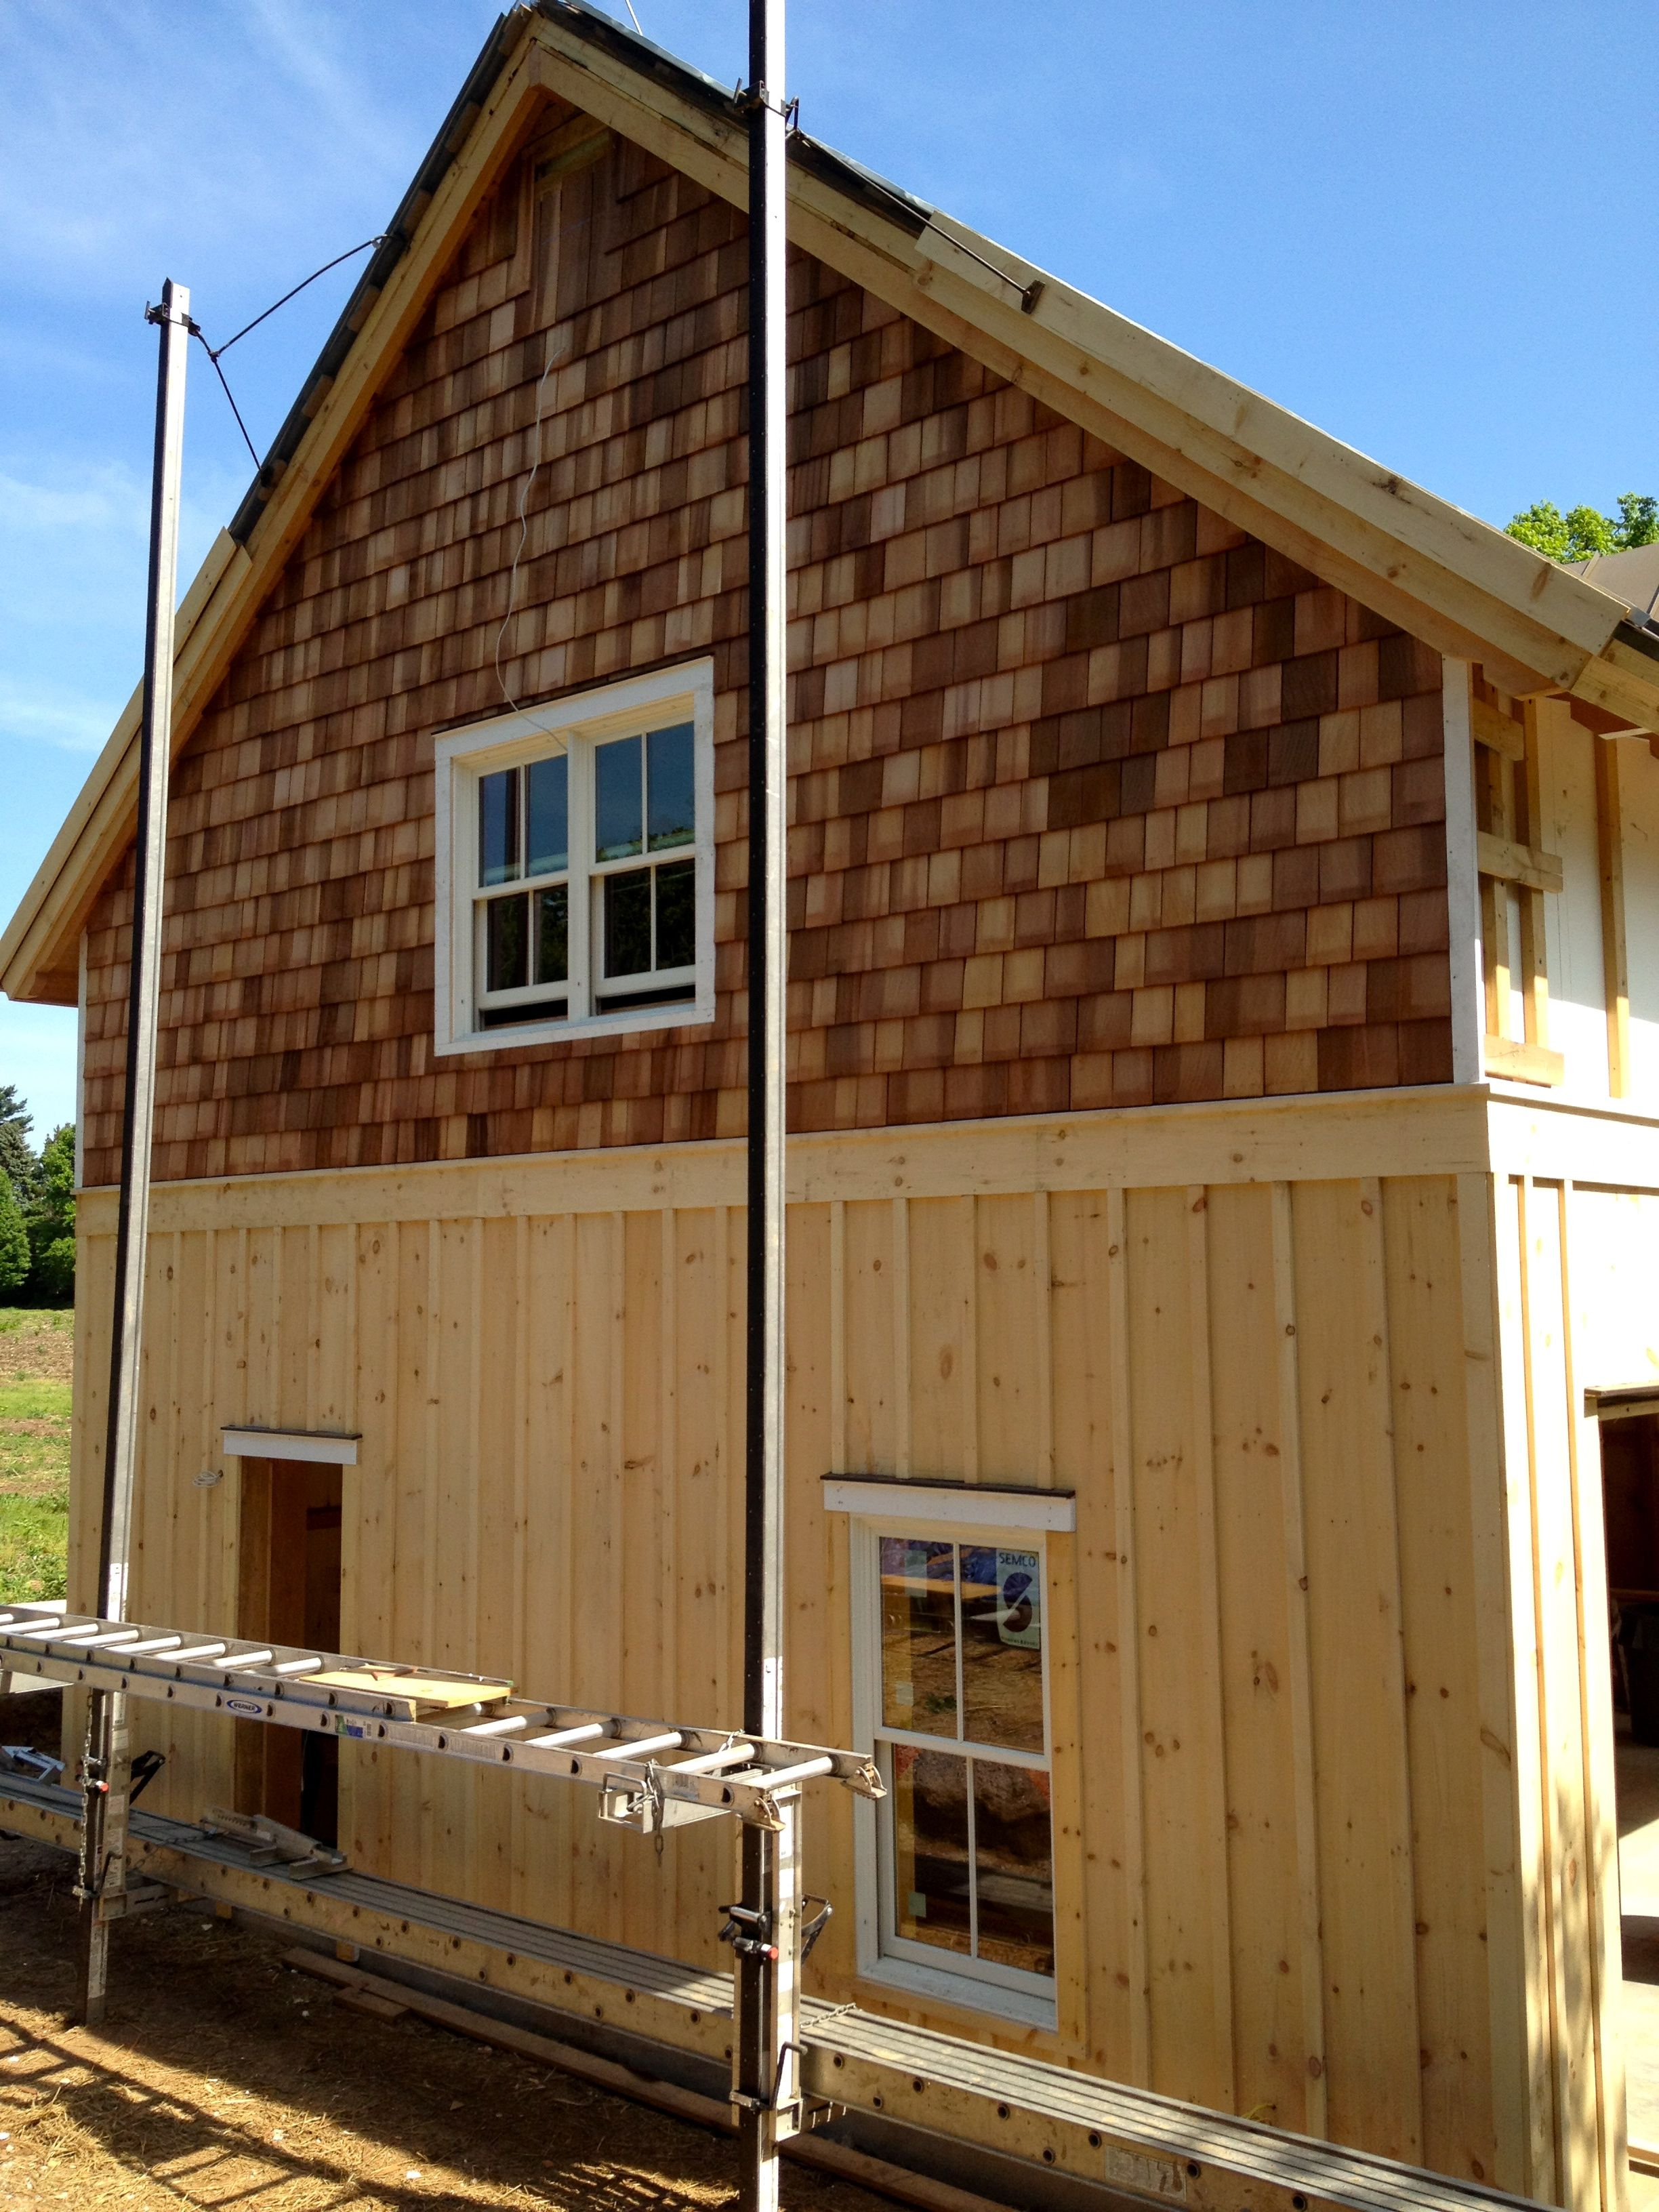 Board And Batten Siding With Cedar Shakes Google Search House Siding Shingle Siding Exterior House Siding